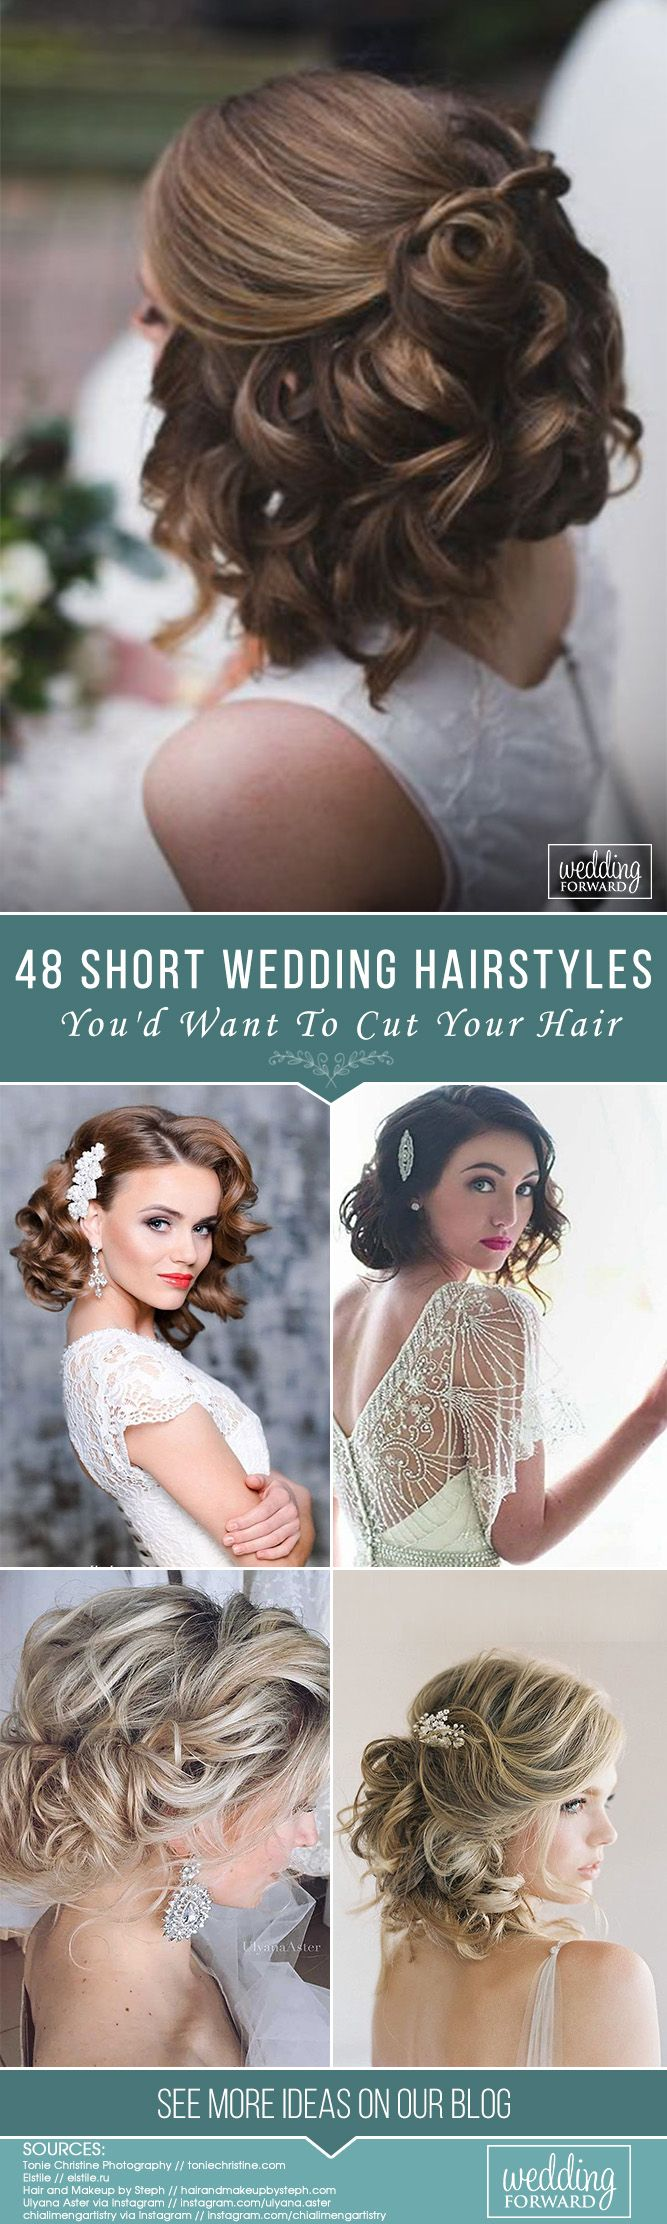 48 Short Wedding Hairstyle Ideas So Good You'd Want To Cut Your Hair ❤ Just be...